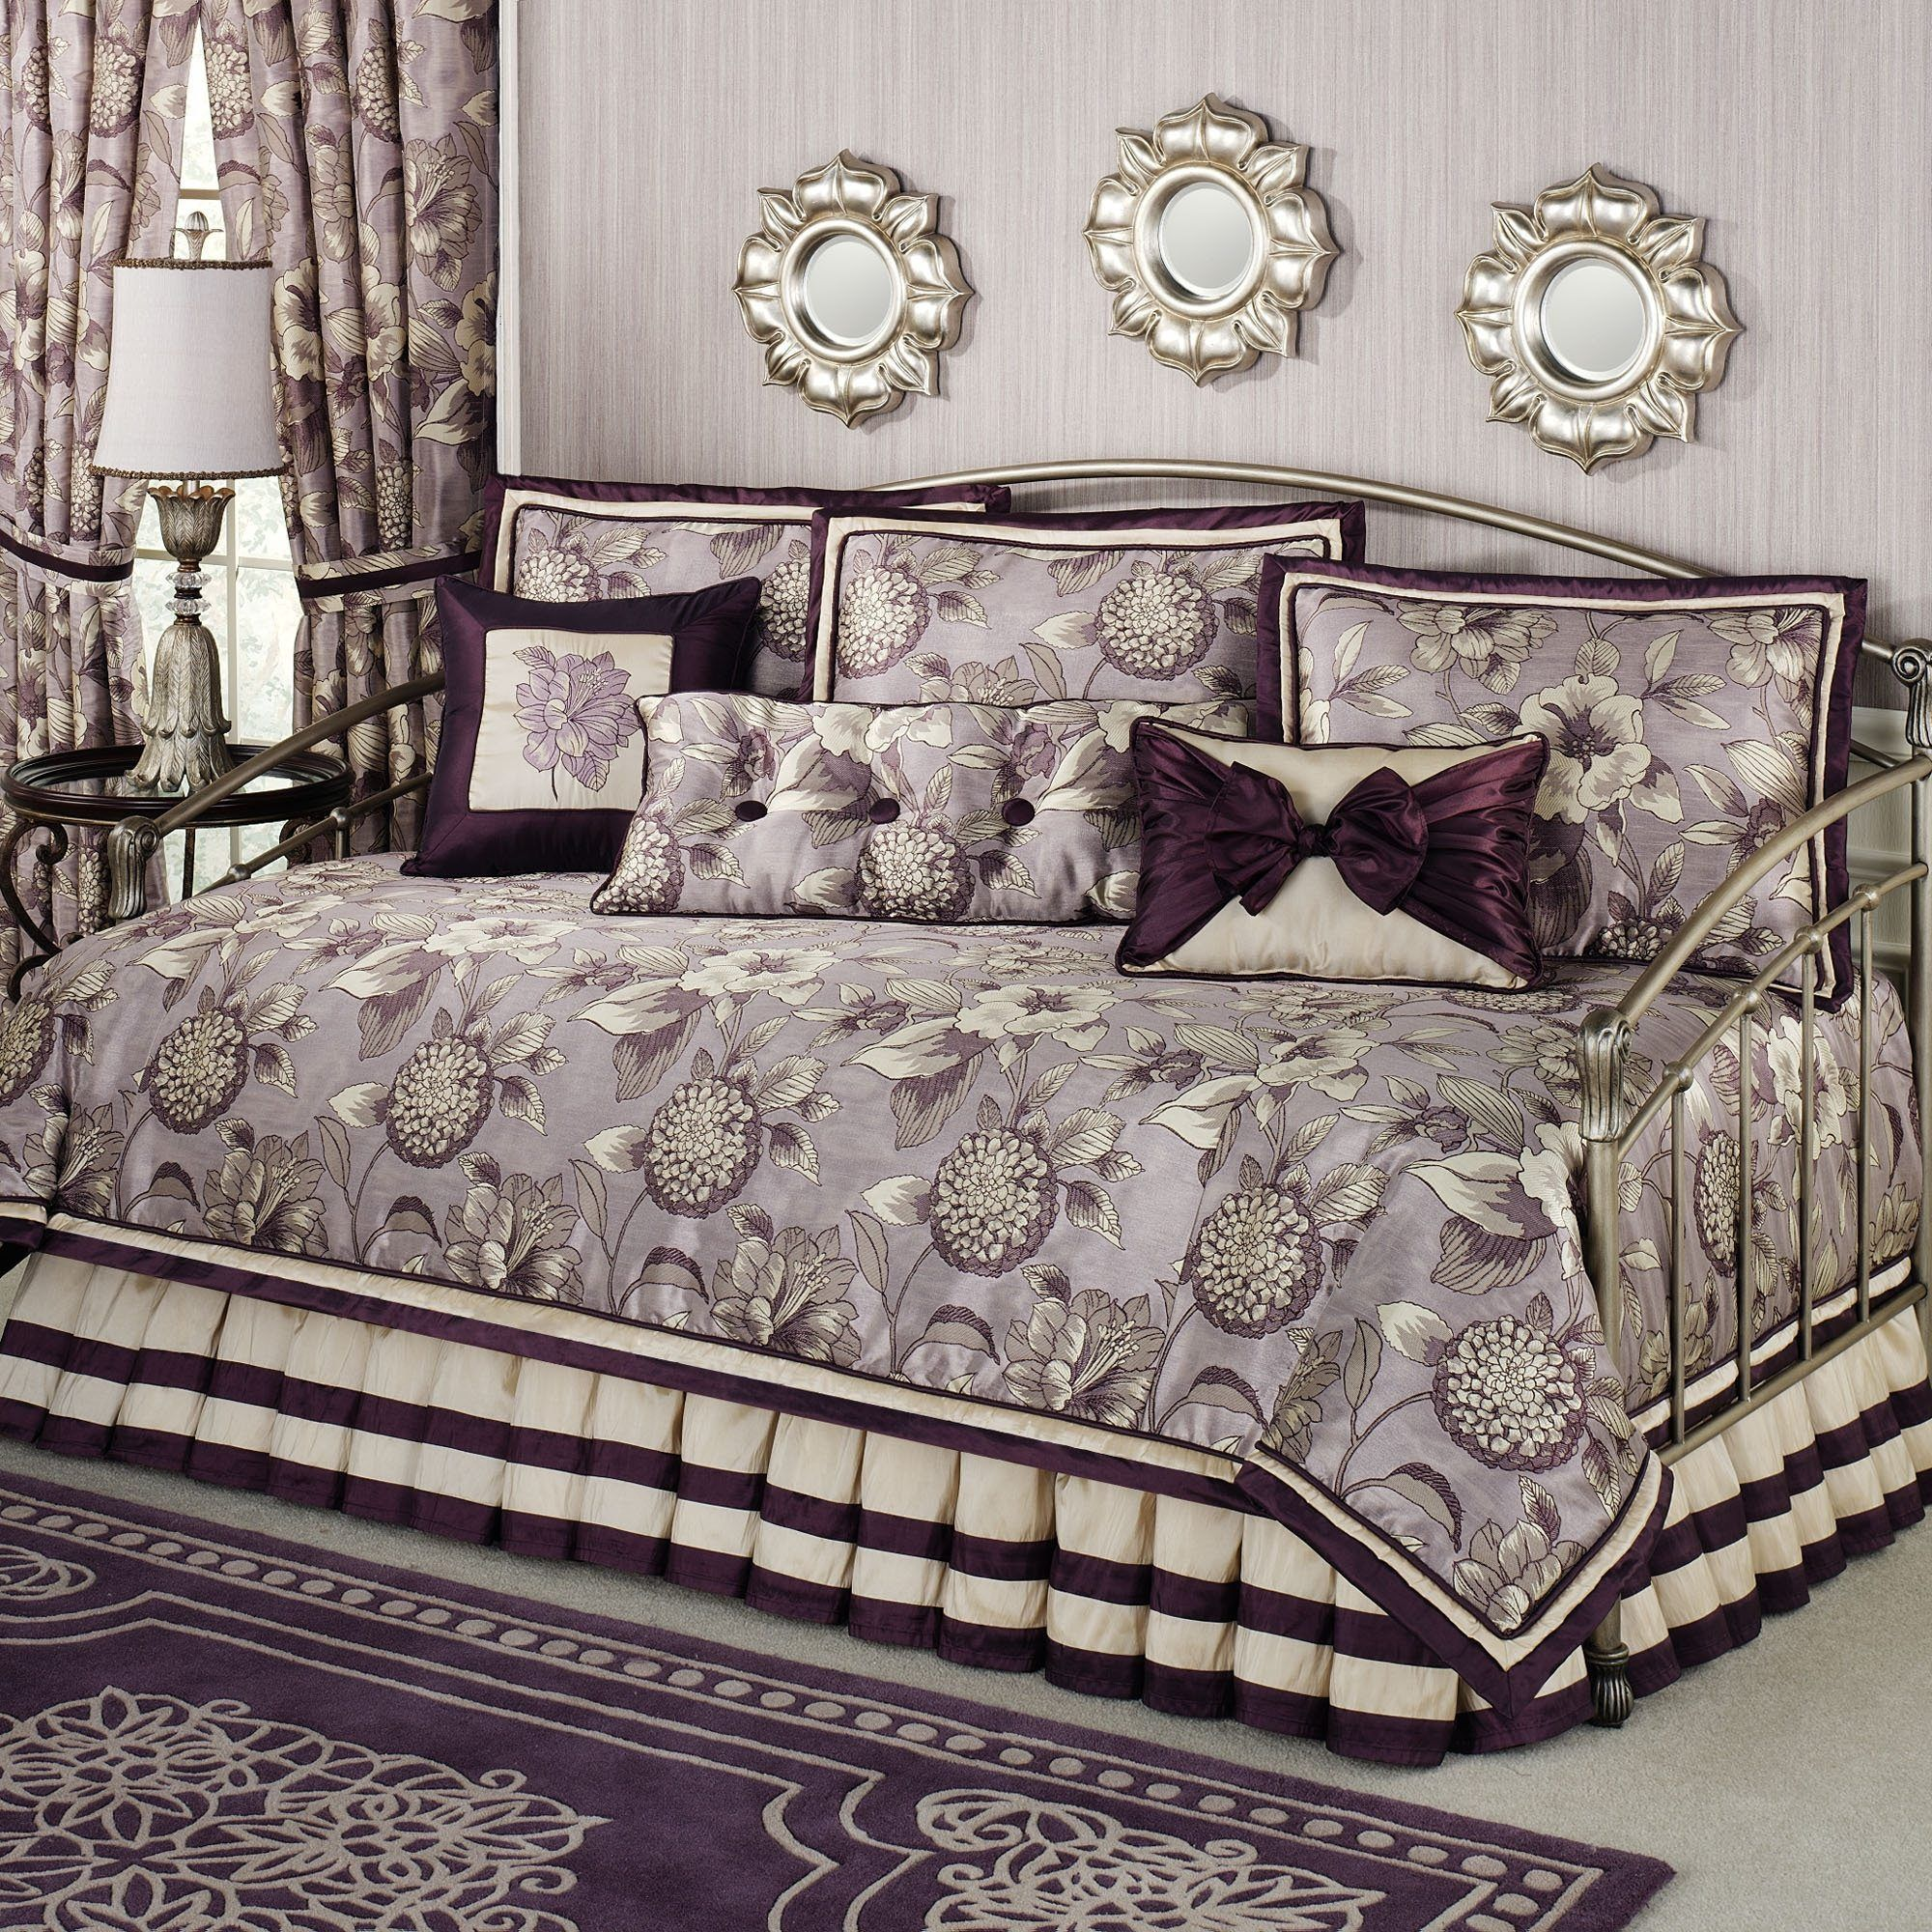 Best Daybed Bedding Sets Clearance Daybed Sets Daybed Bedding 400 x 300